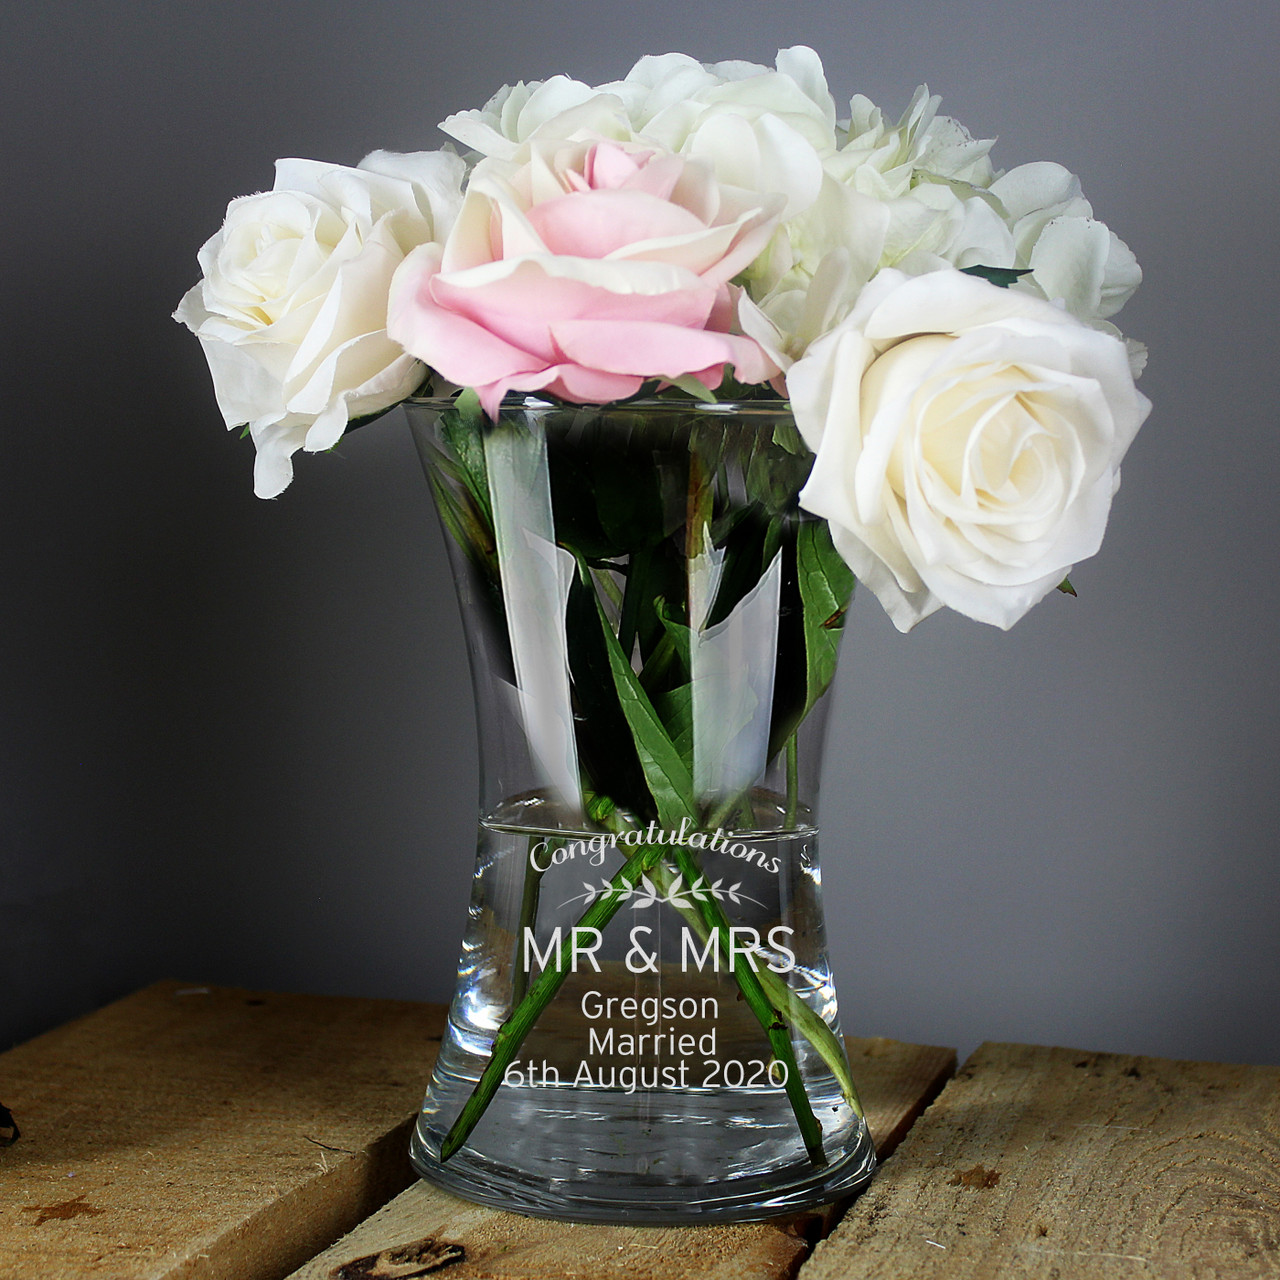 NEW PERSONALISED BULLET VASE PICK FROM 4 DESIGNS WEDDING MOTHER ANNIVERSARY GIFT